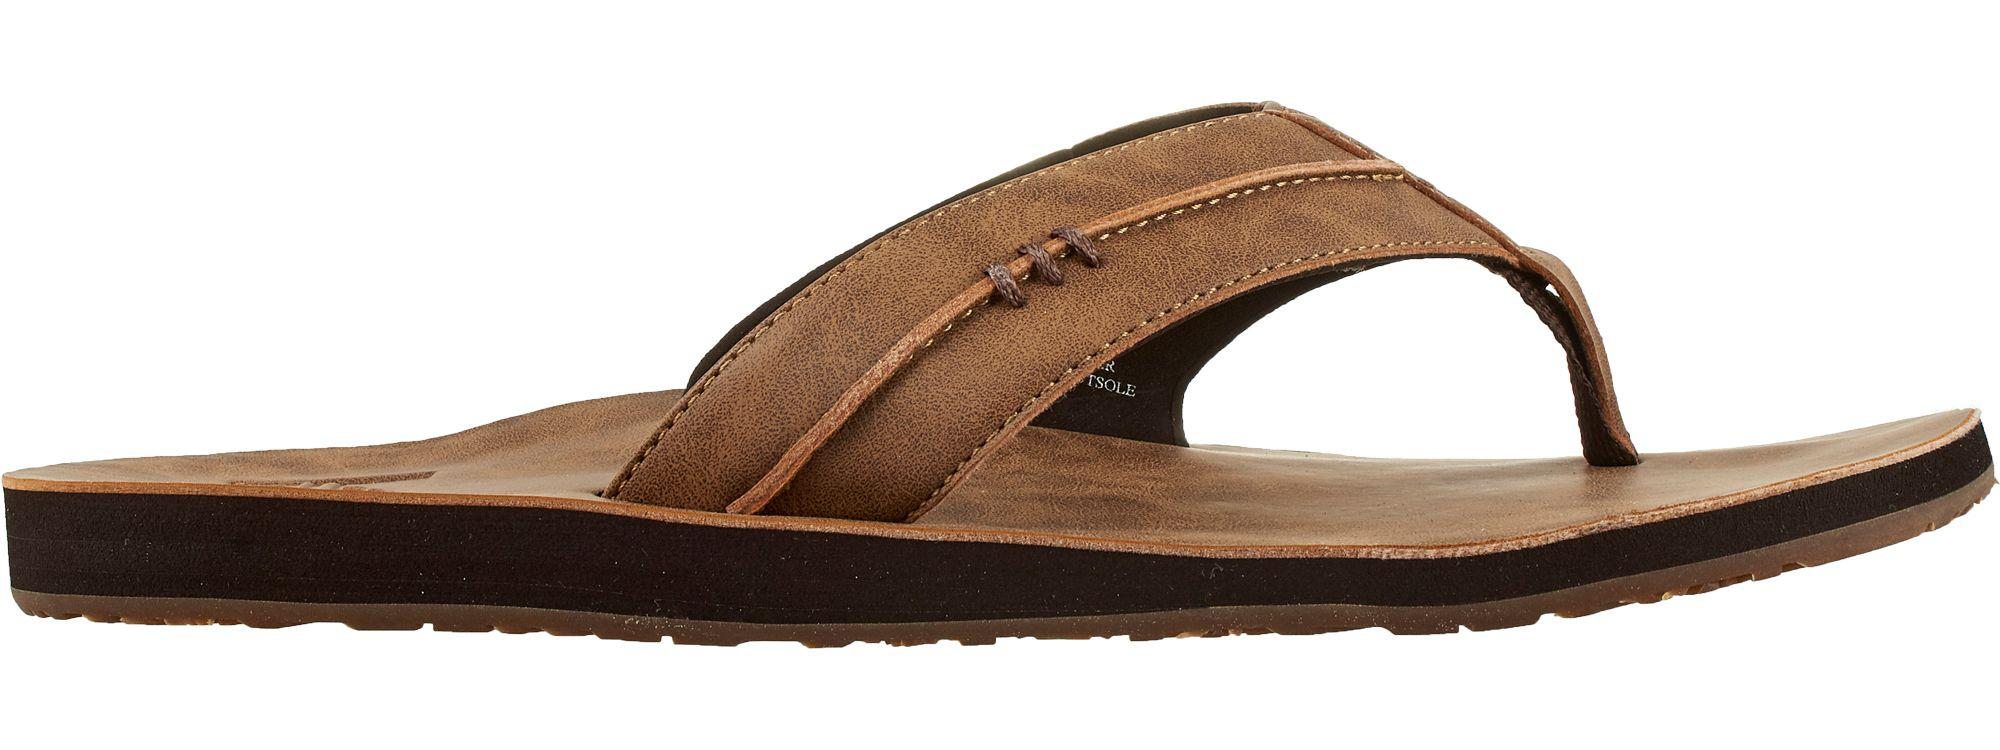 206685928 Lyst - Reef Marbea Synthetic Leather Sandals in Brown for Men